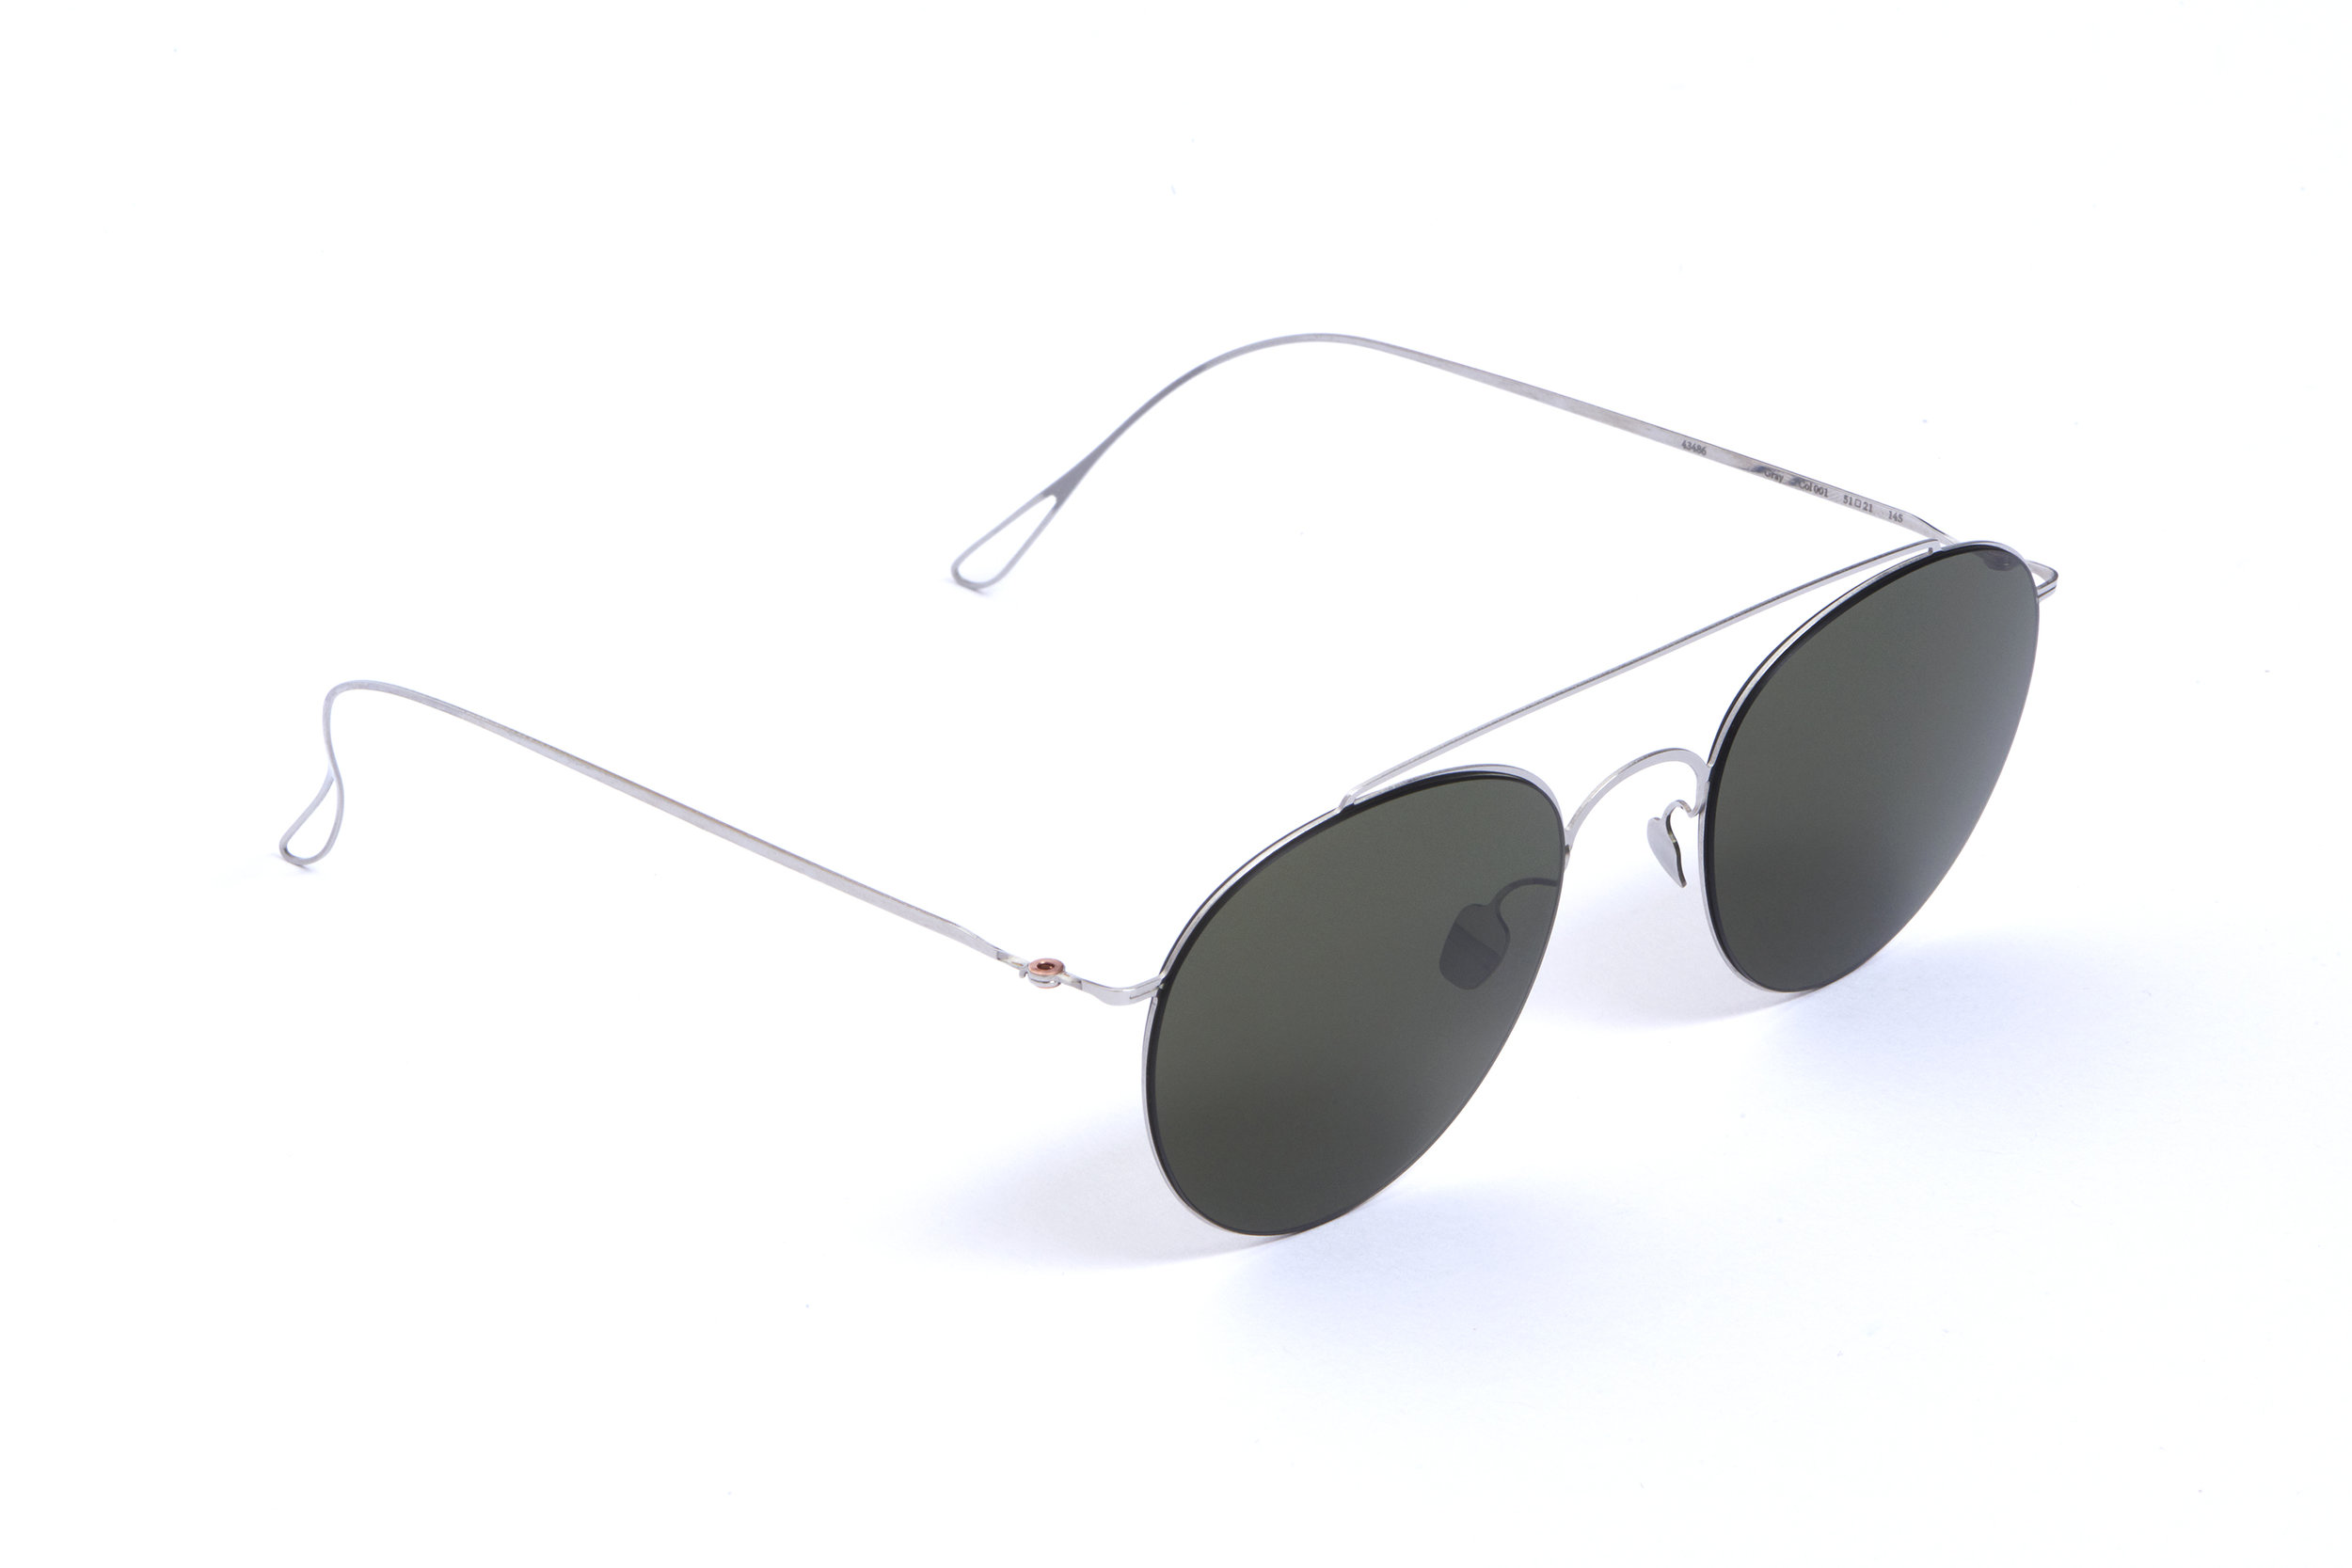 haffmans_neumeister_gray_silver_g15_ultralight_sunglasses_angle_102462.jpg